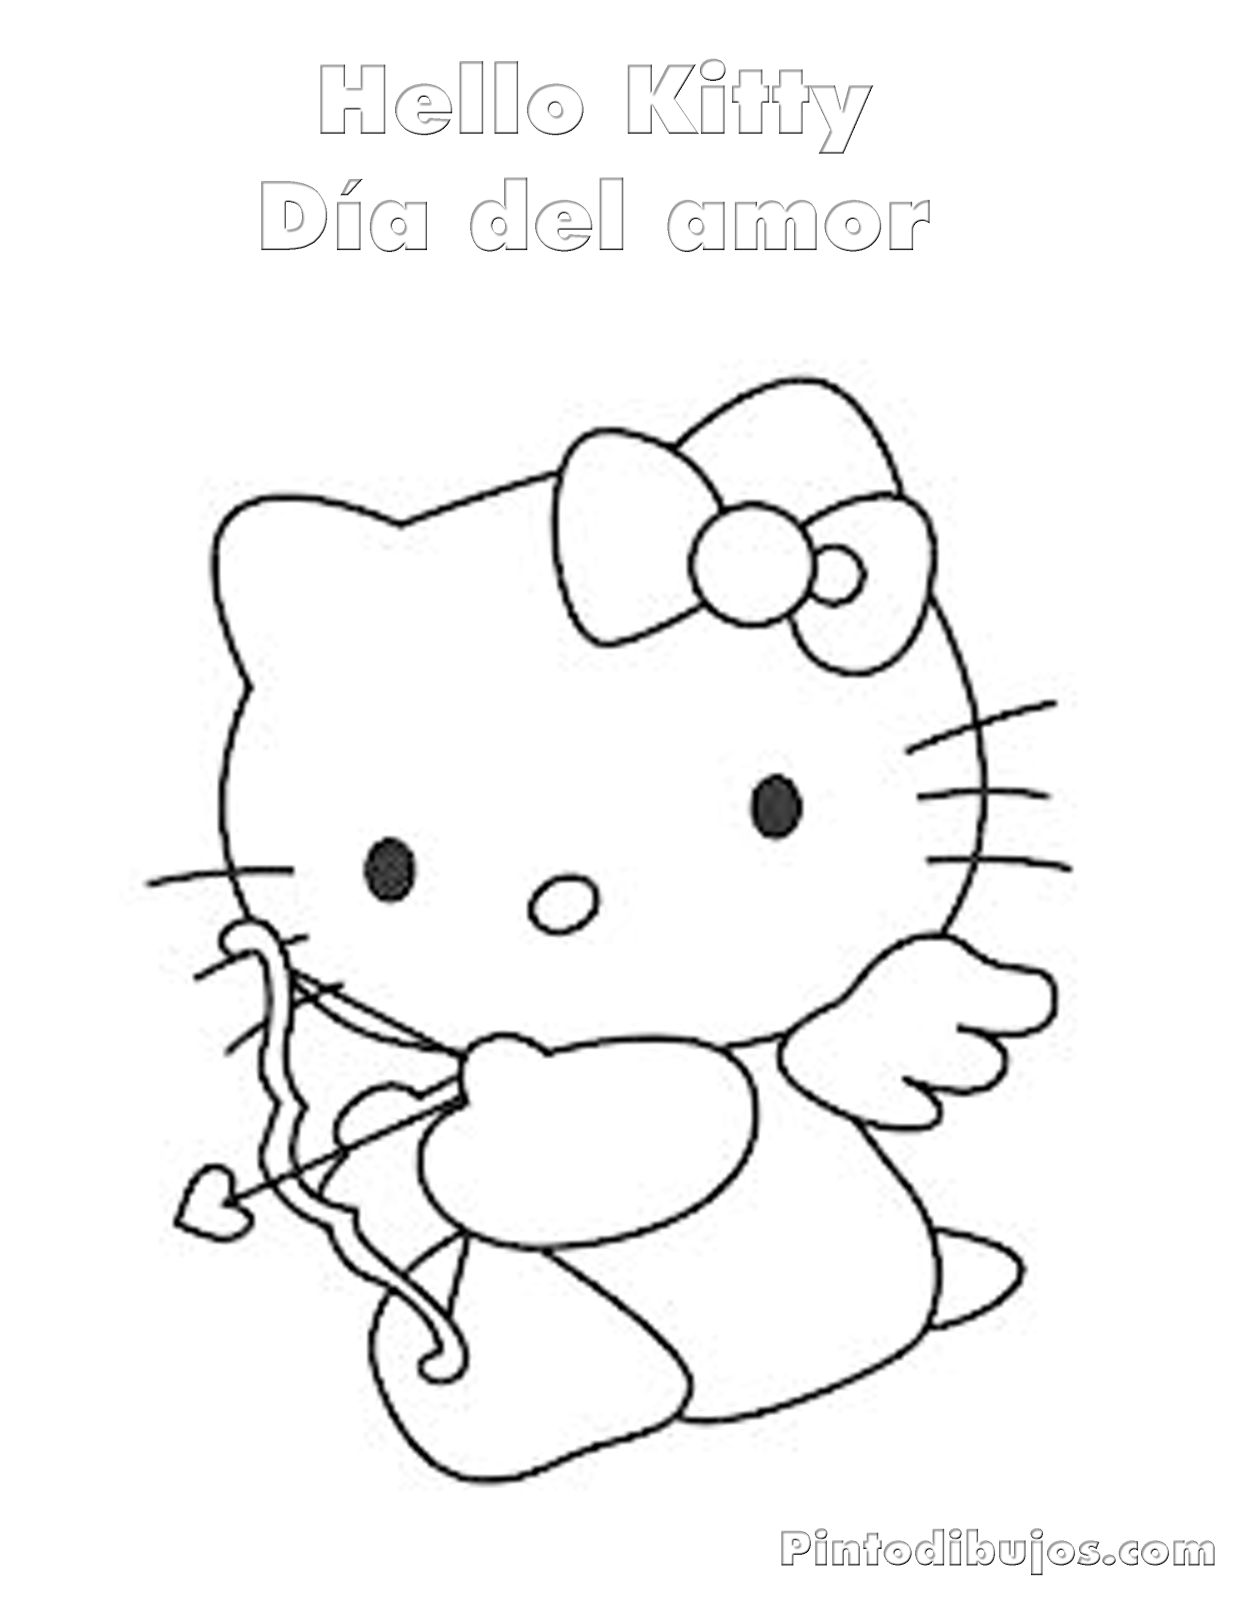 Hello kitty butterfly coloring pages - Hello Kitty Valentines Day Coloring Pages